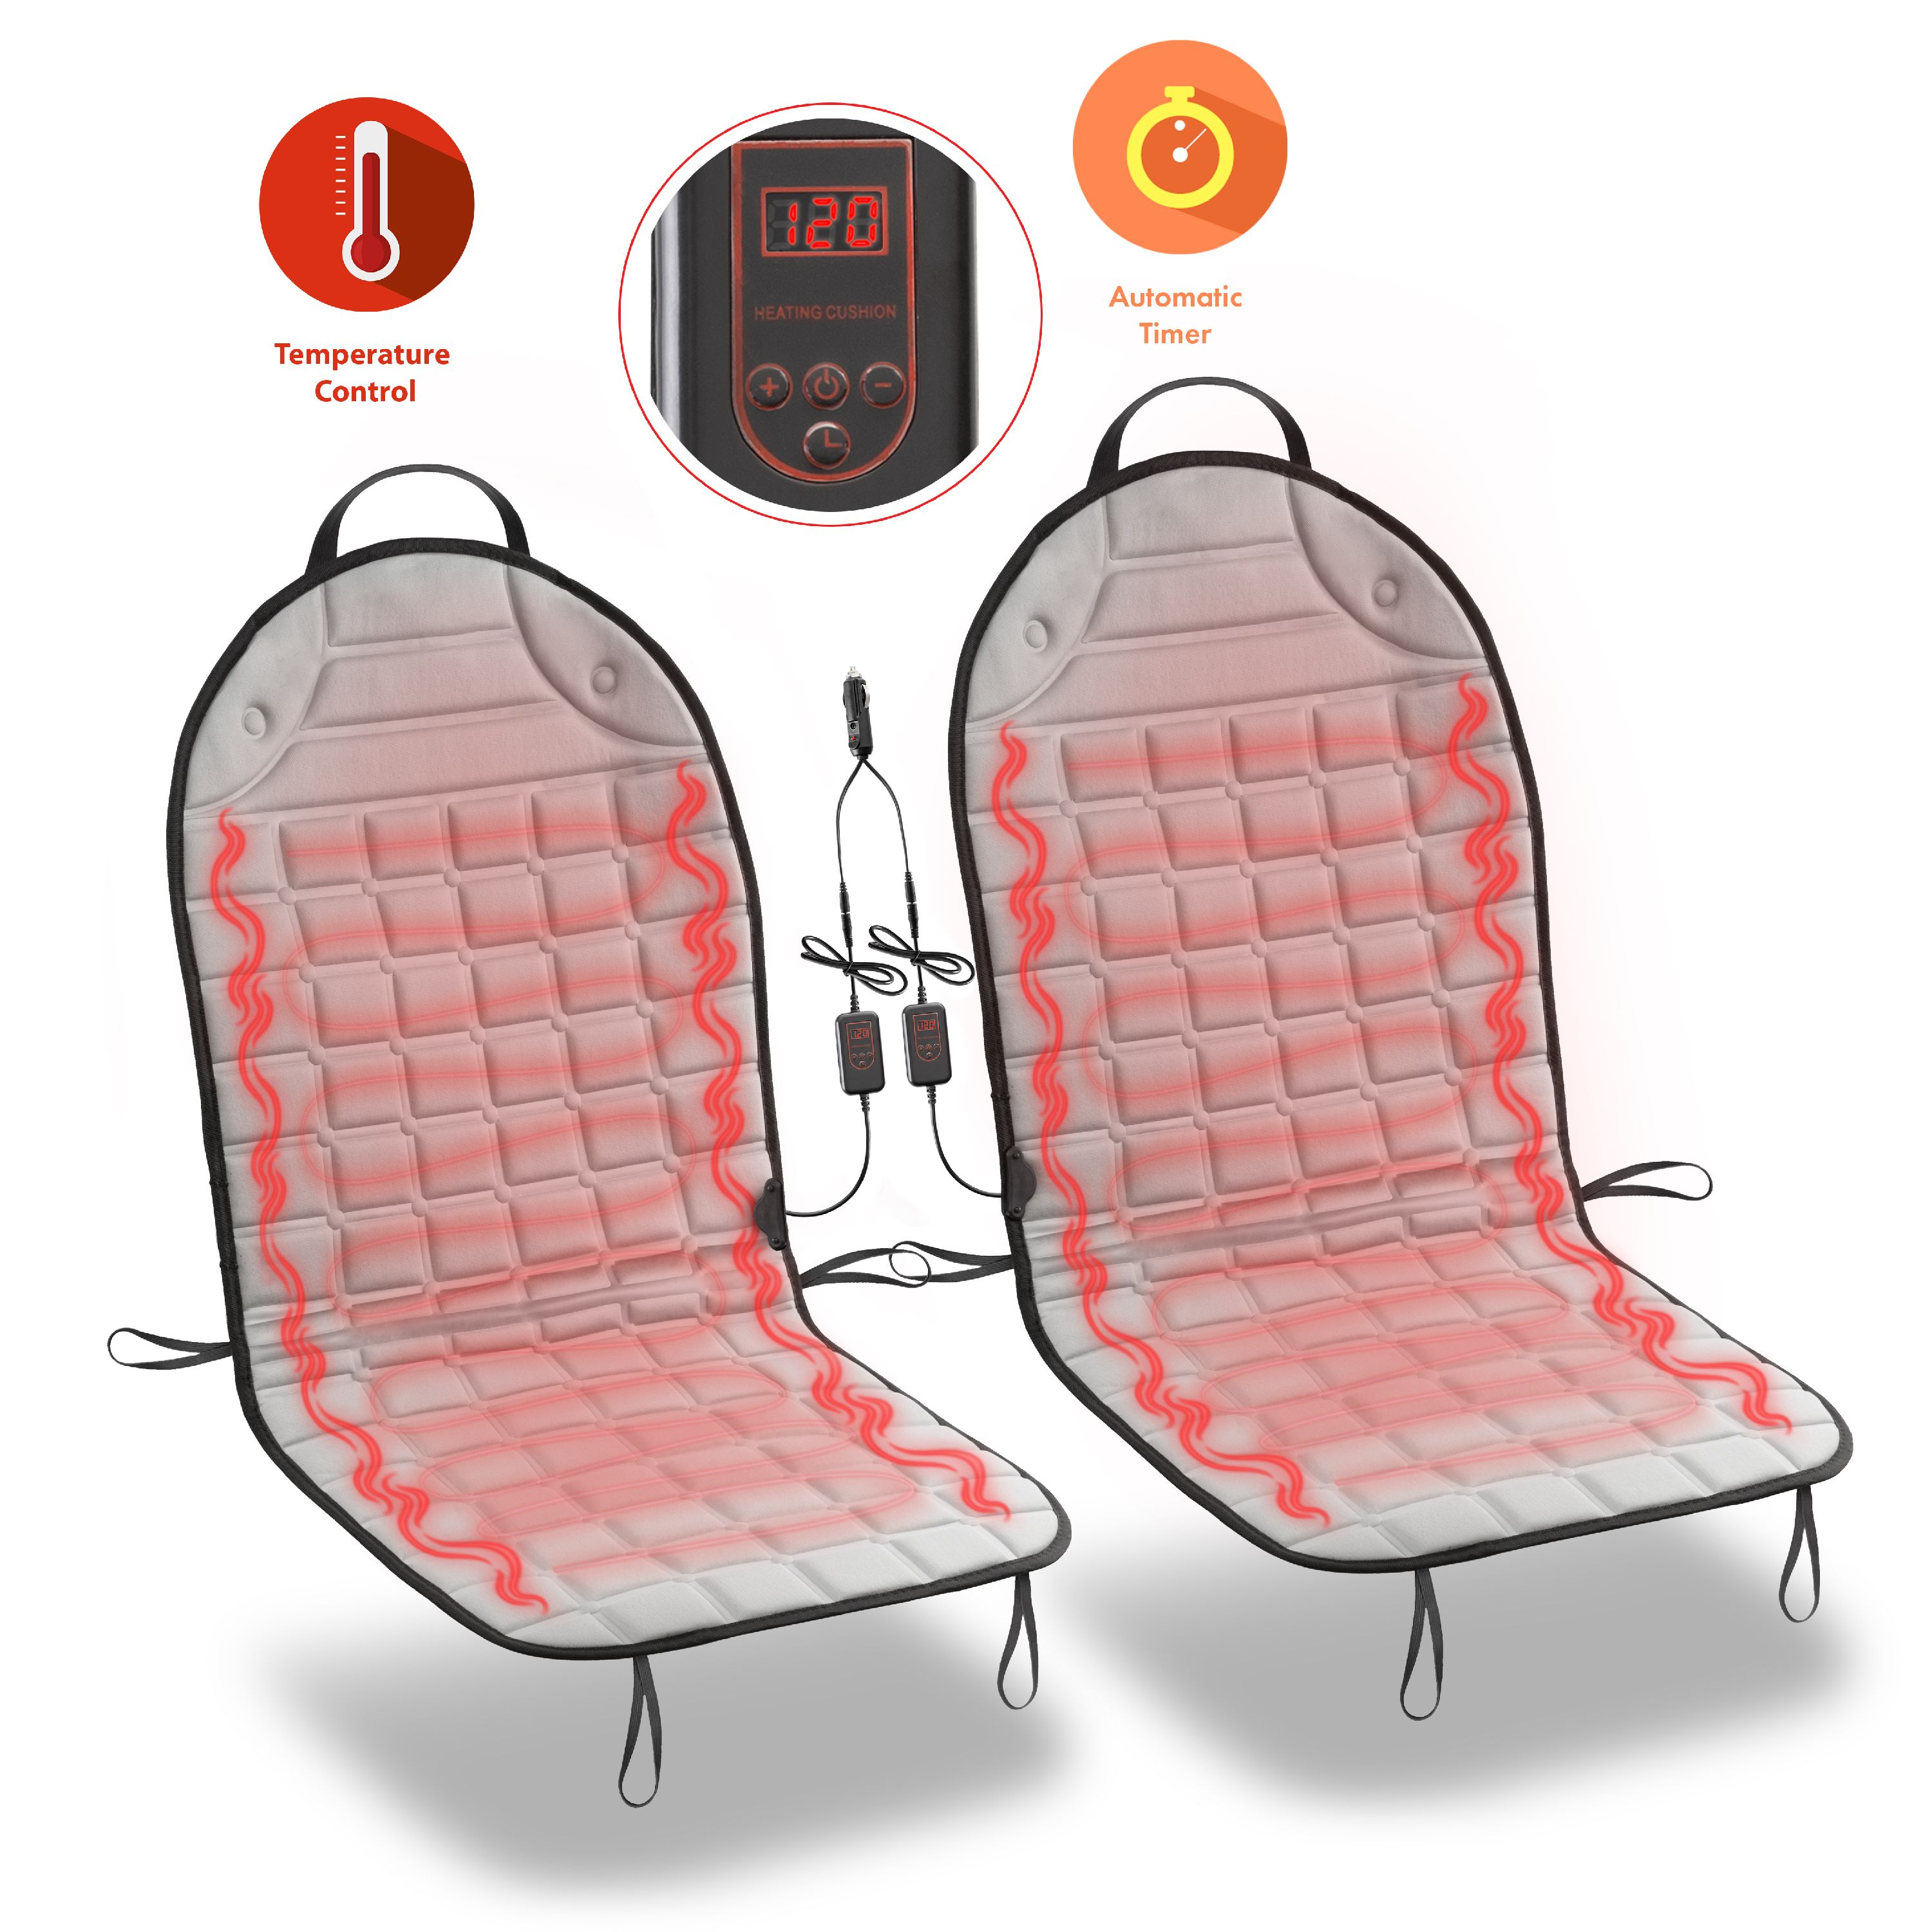 Zone Tech Heated Rear Seat Cushion Black Premium Quality 12V Heating Warmer Rear Pad Hot Cover Perfect for Cold Weather and Winter Driving